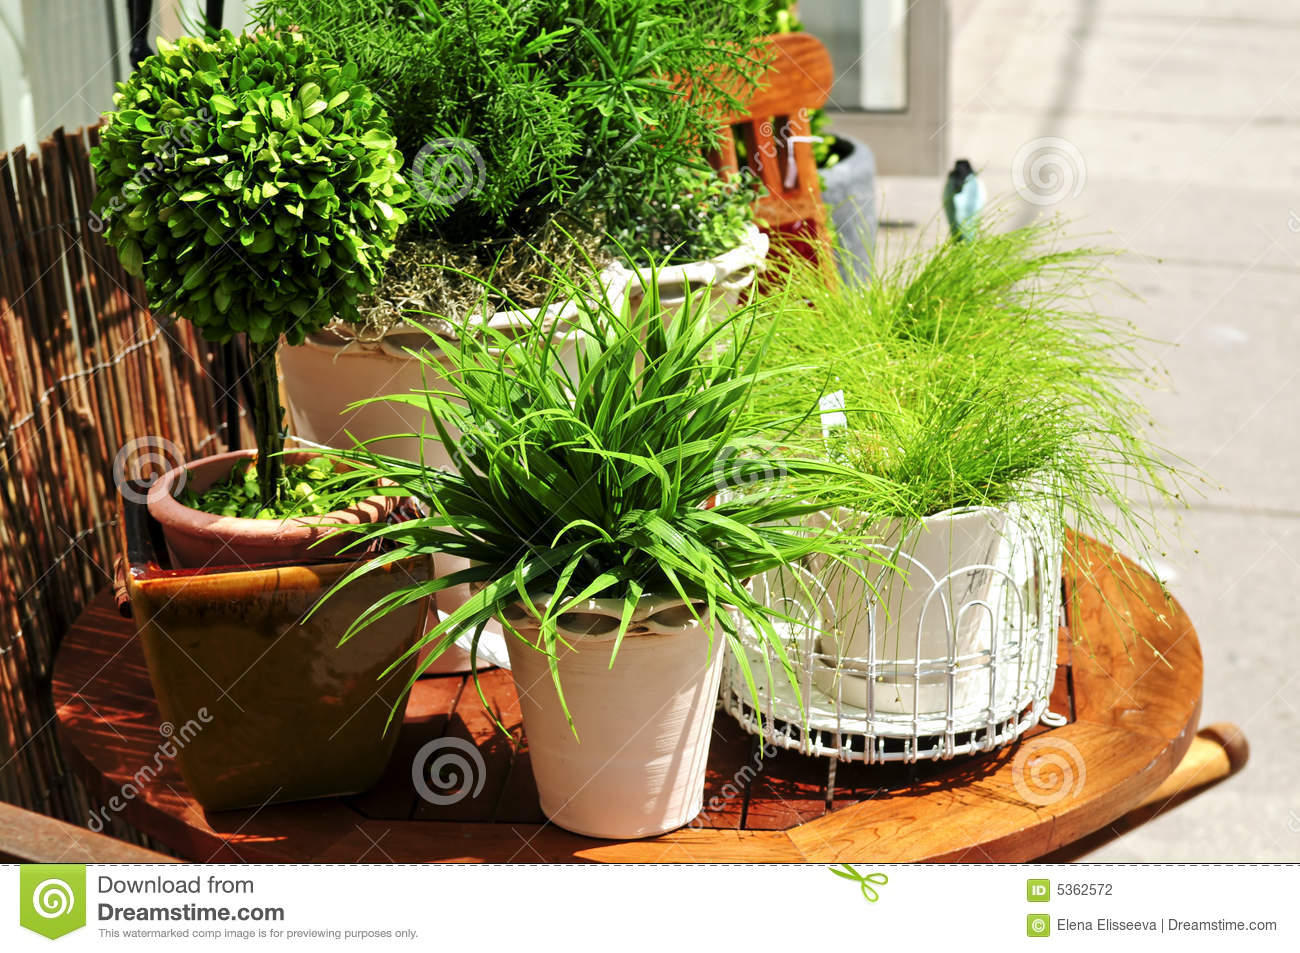 Plantes vertes mises en pot photographie stock image for Plantes vertes